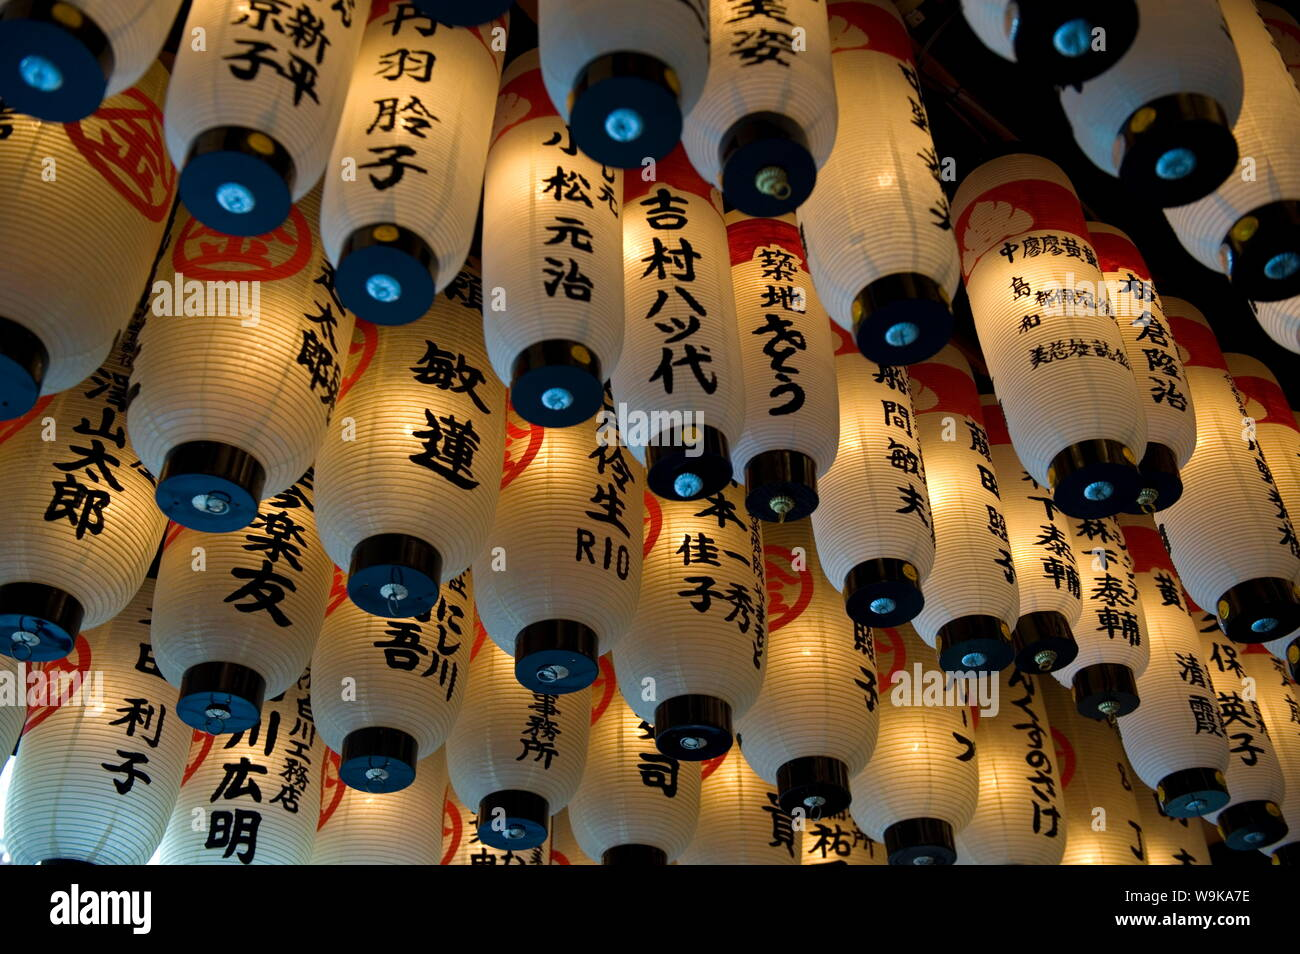 Lanterns with donors names hanging from the ceiling at Hozenji Temple in Namba, Osaka, Japan Stock Photo